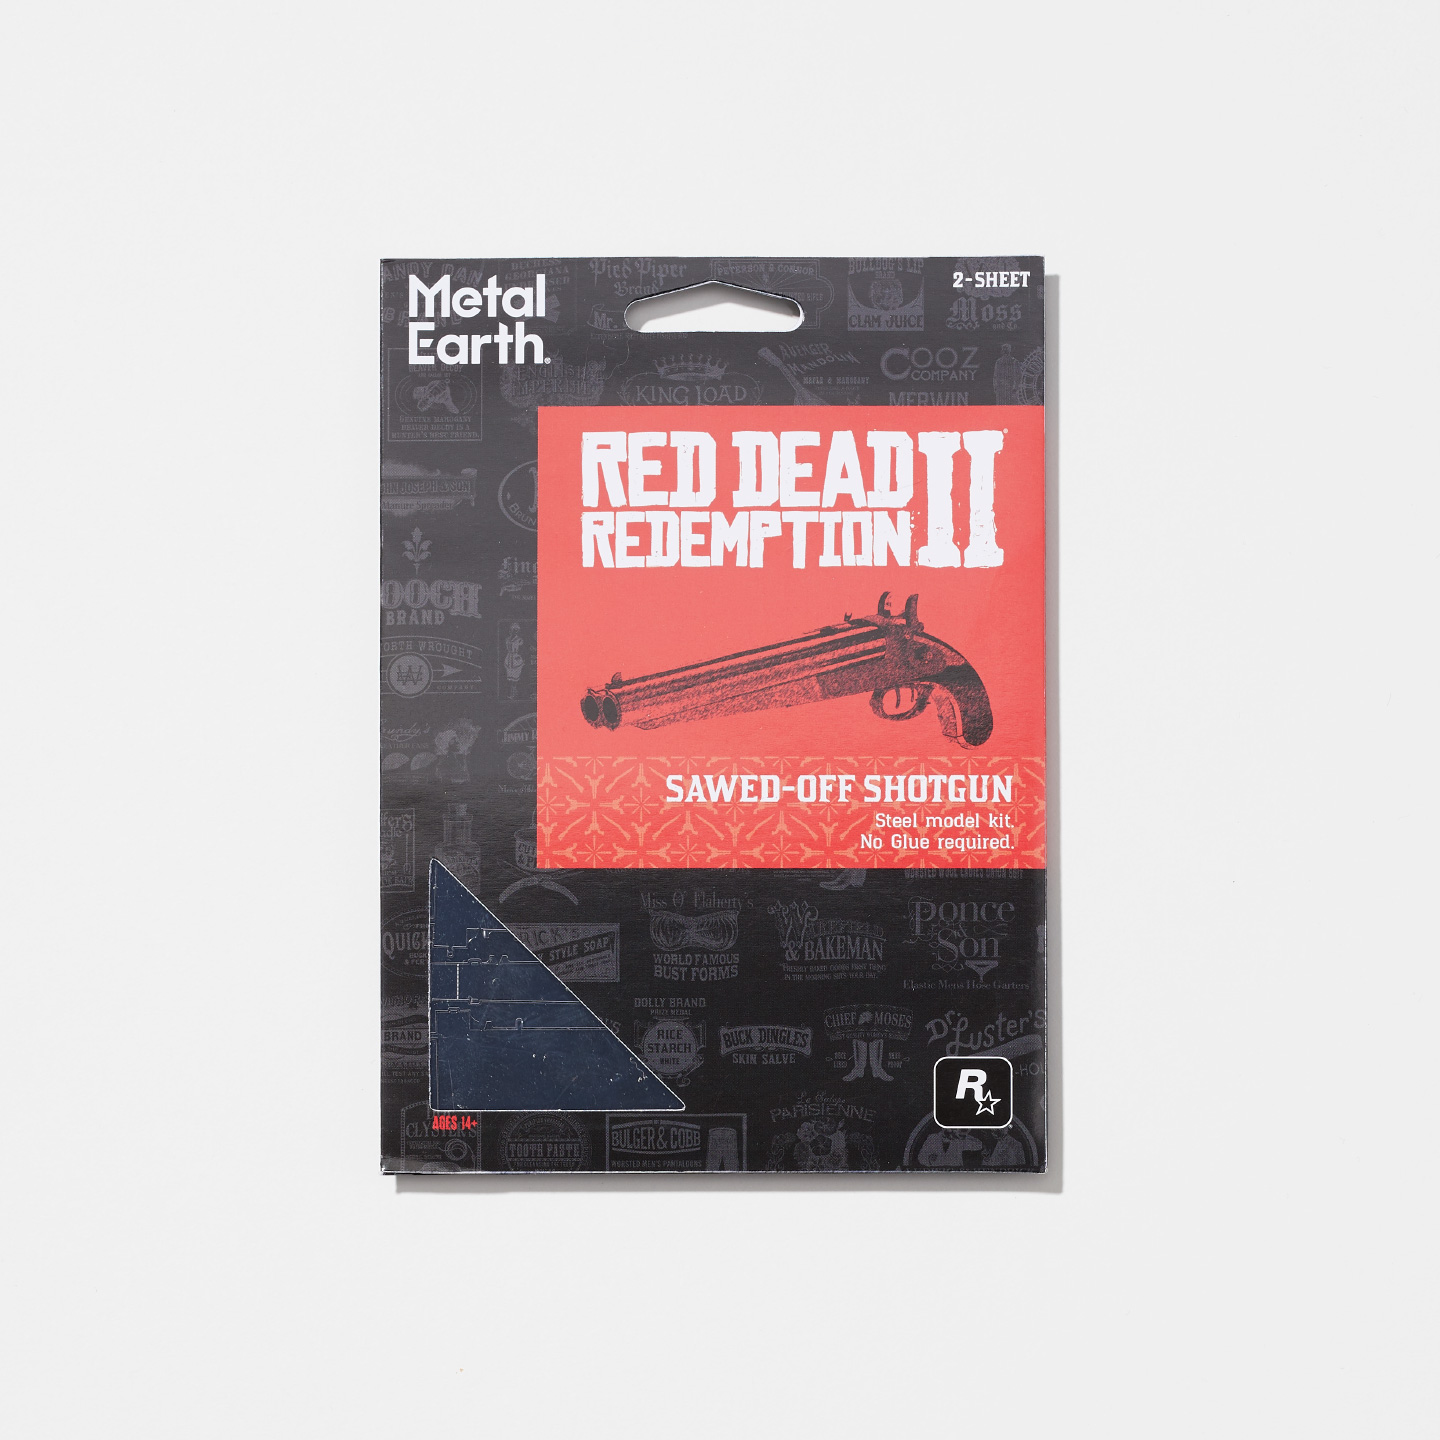 Red Dead Redemption 2 Metal Earth Sawed-Off Shotgun 3D Puzzle